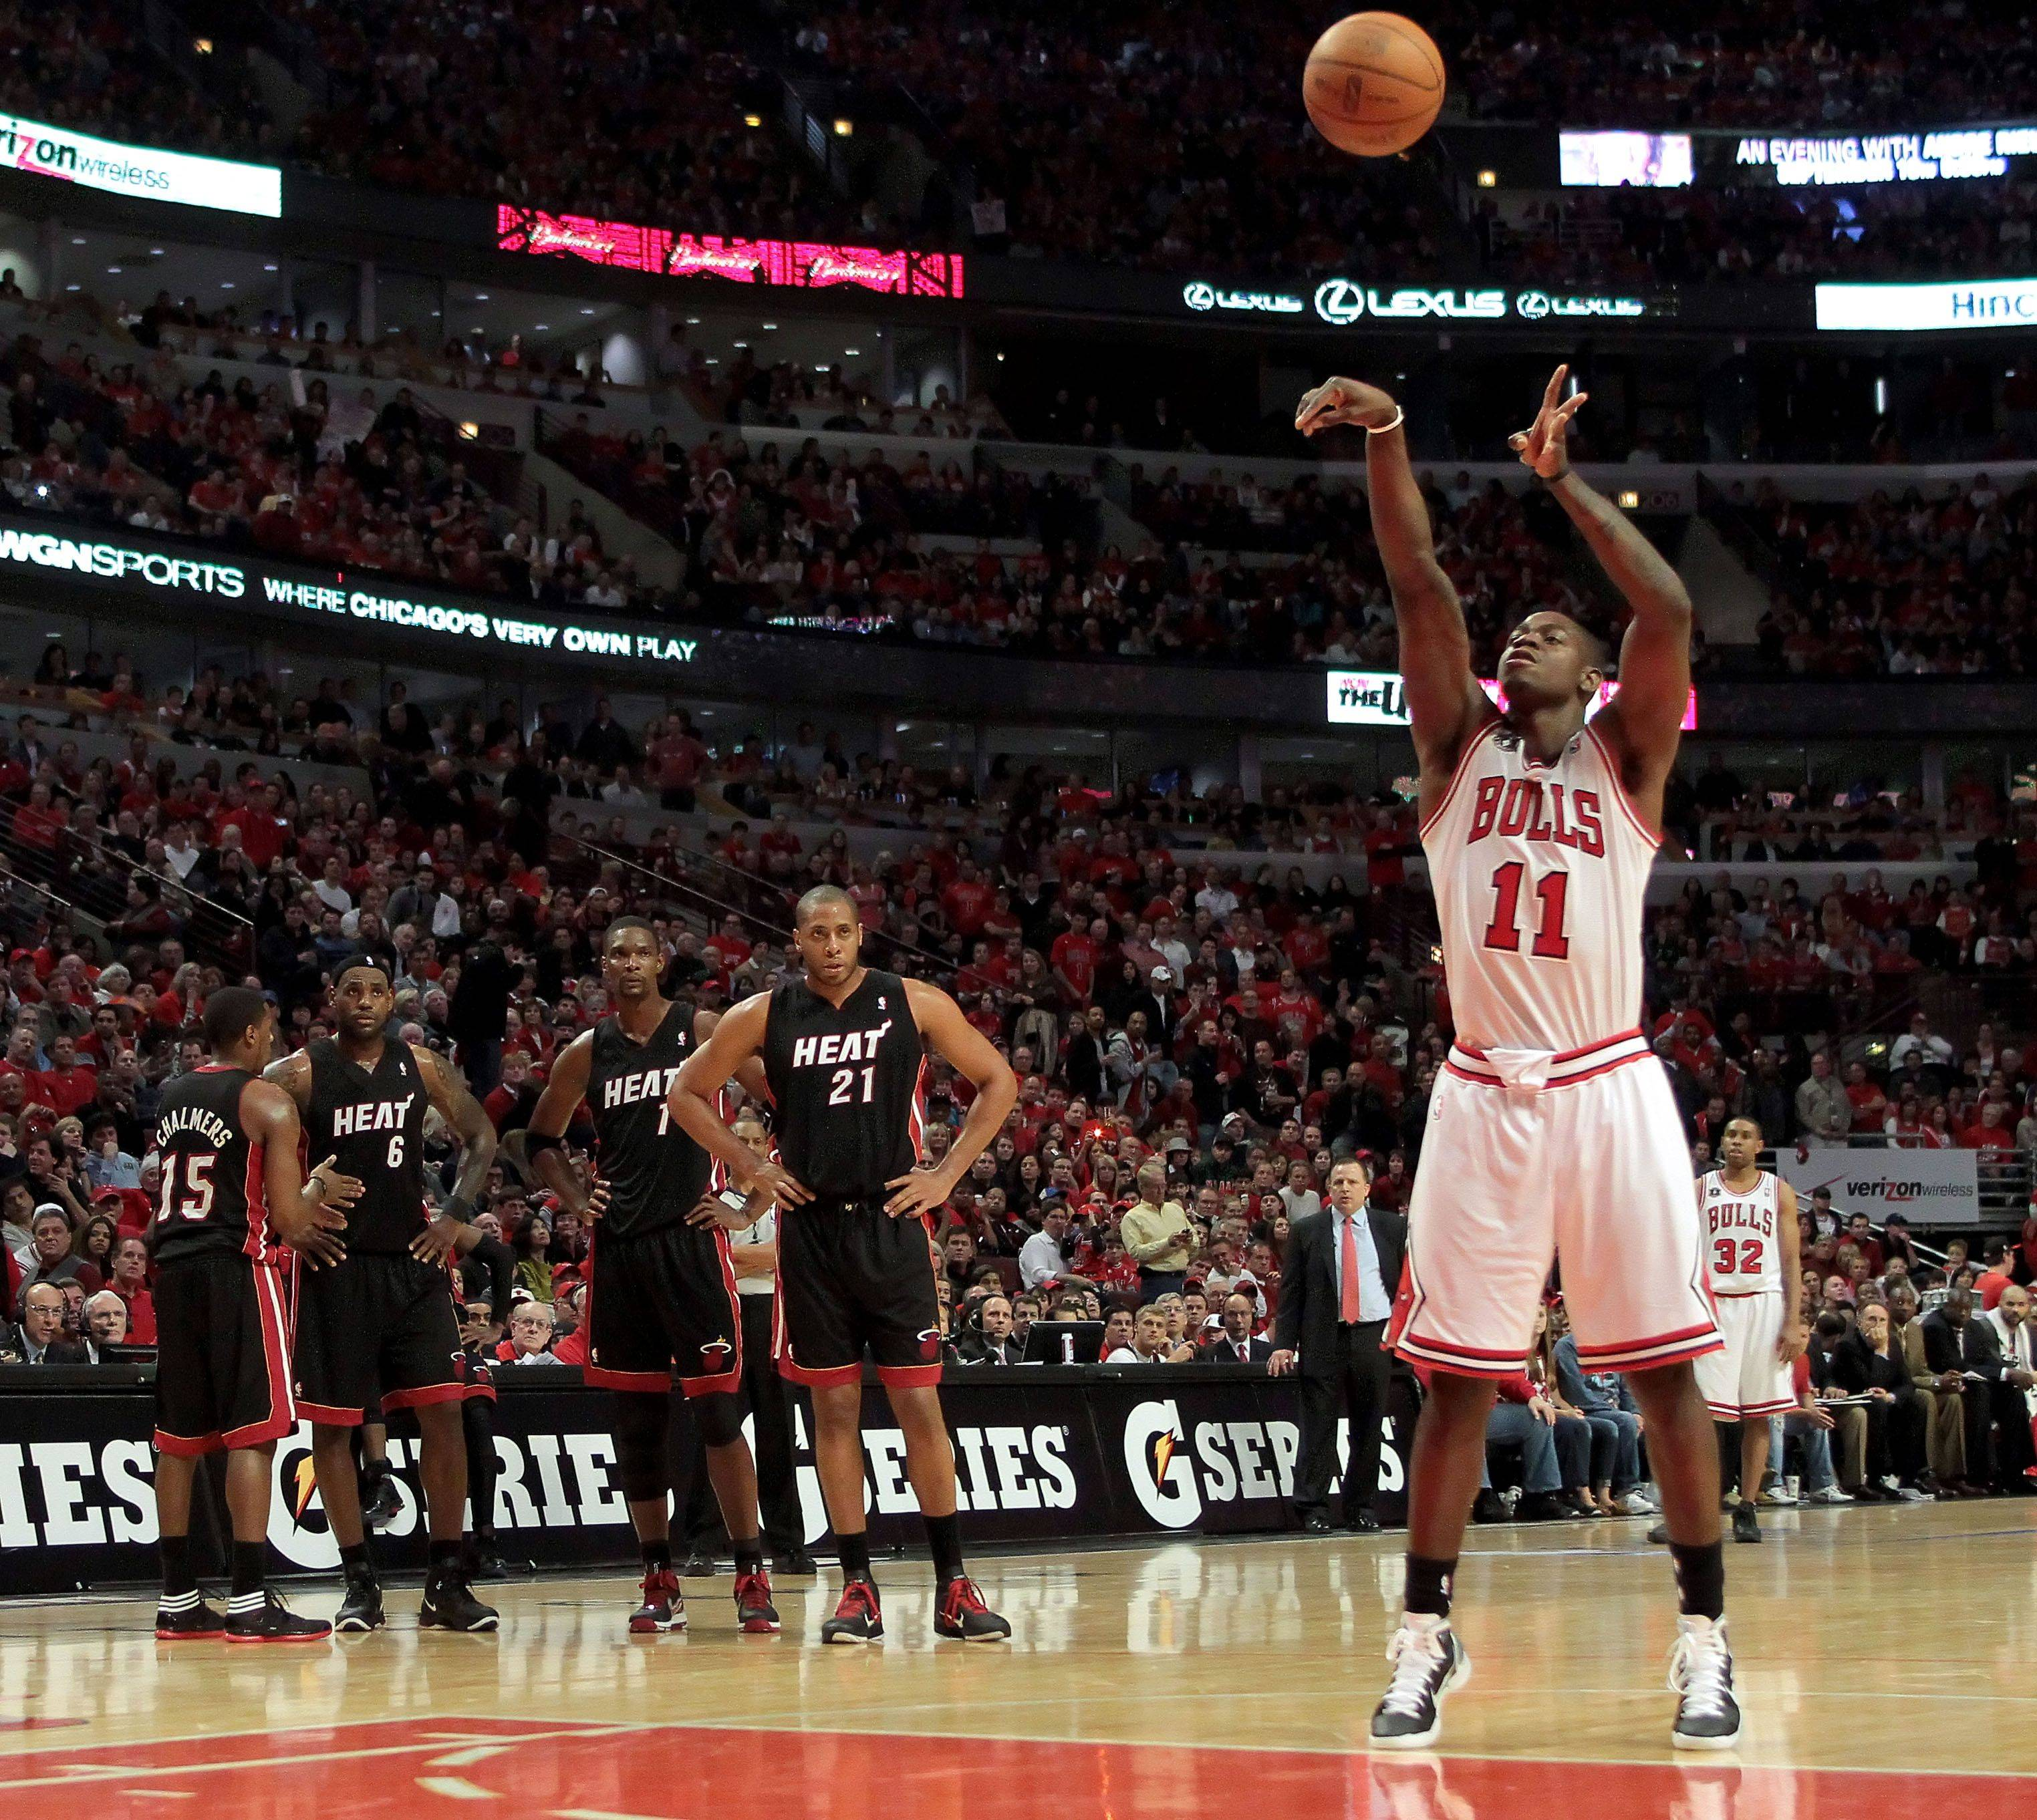 Chicago Bulls shooting guard Ronnie Brewer shoots a technical foul during game one.